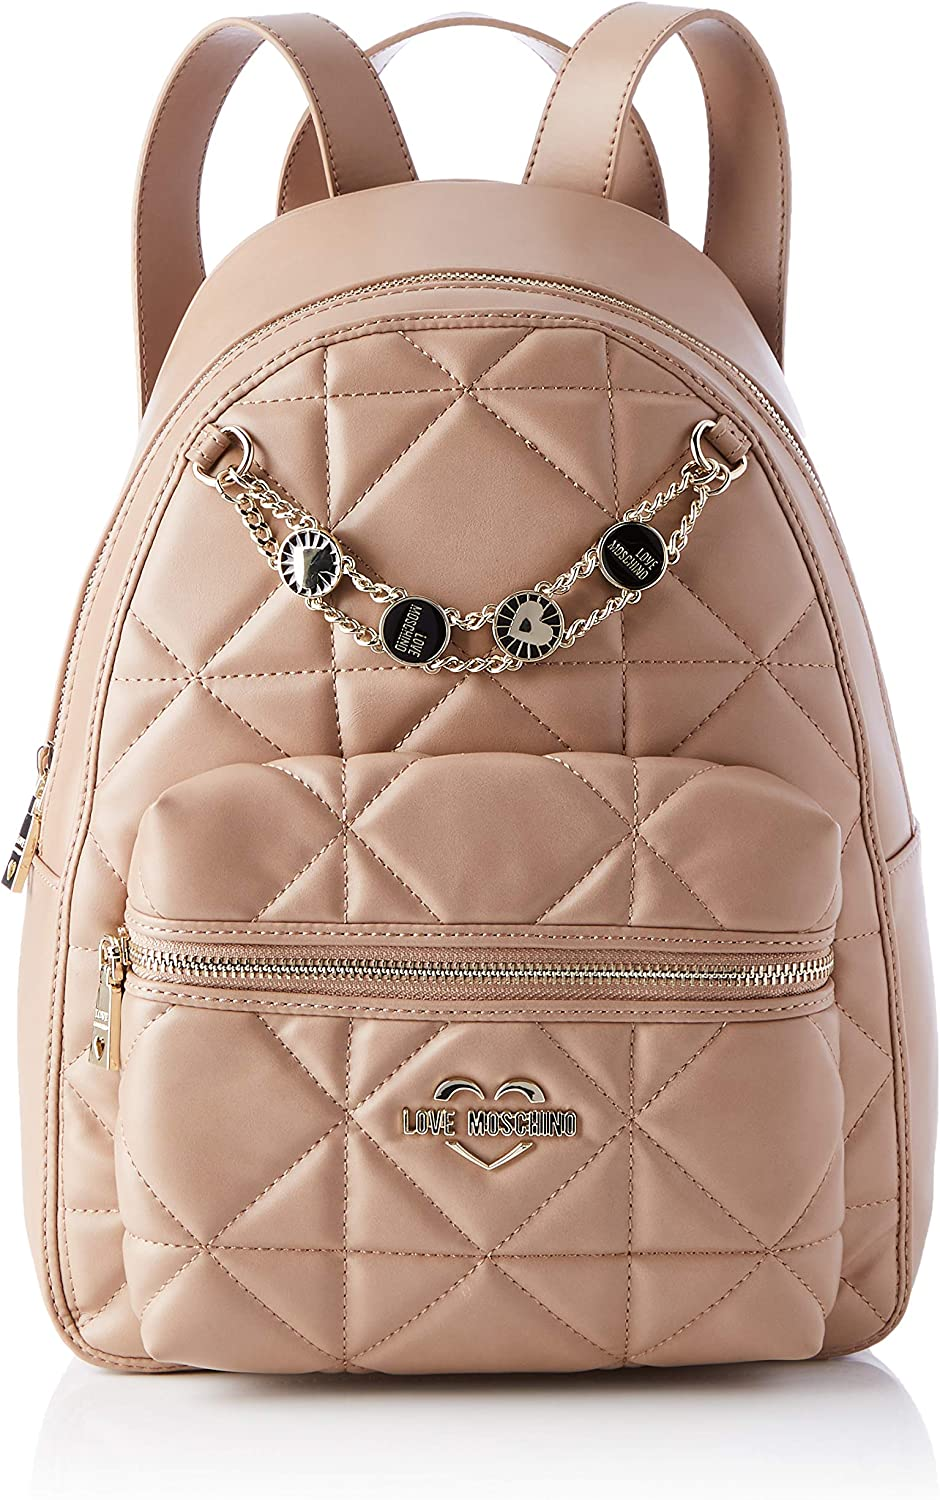 Sale Special Price Love Moschino Fashionable price Taupe